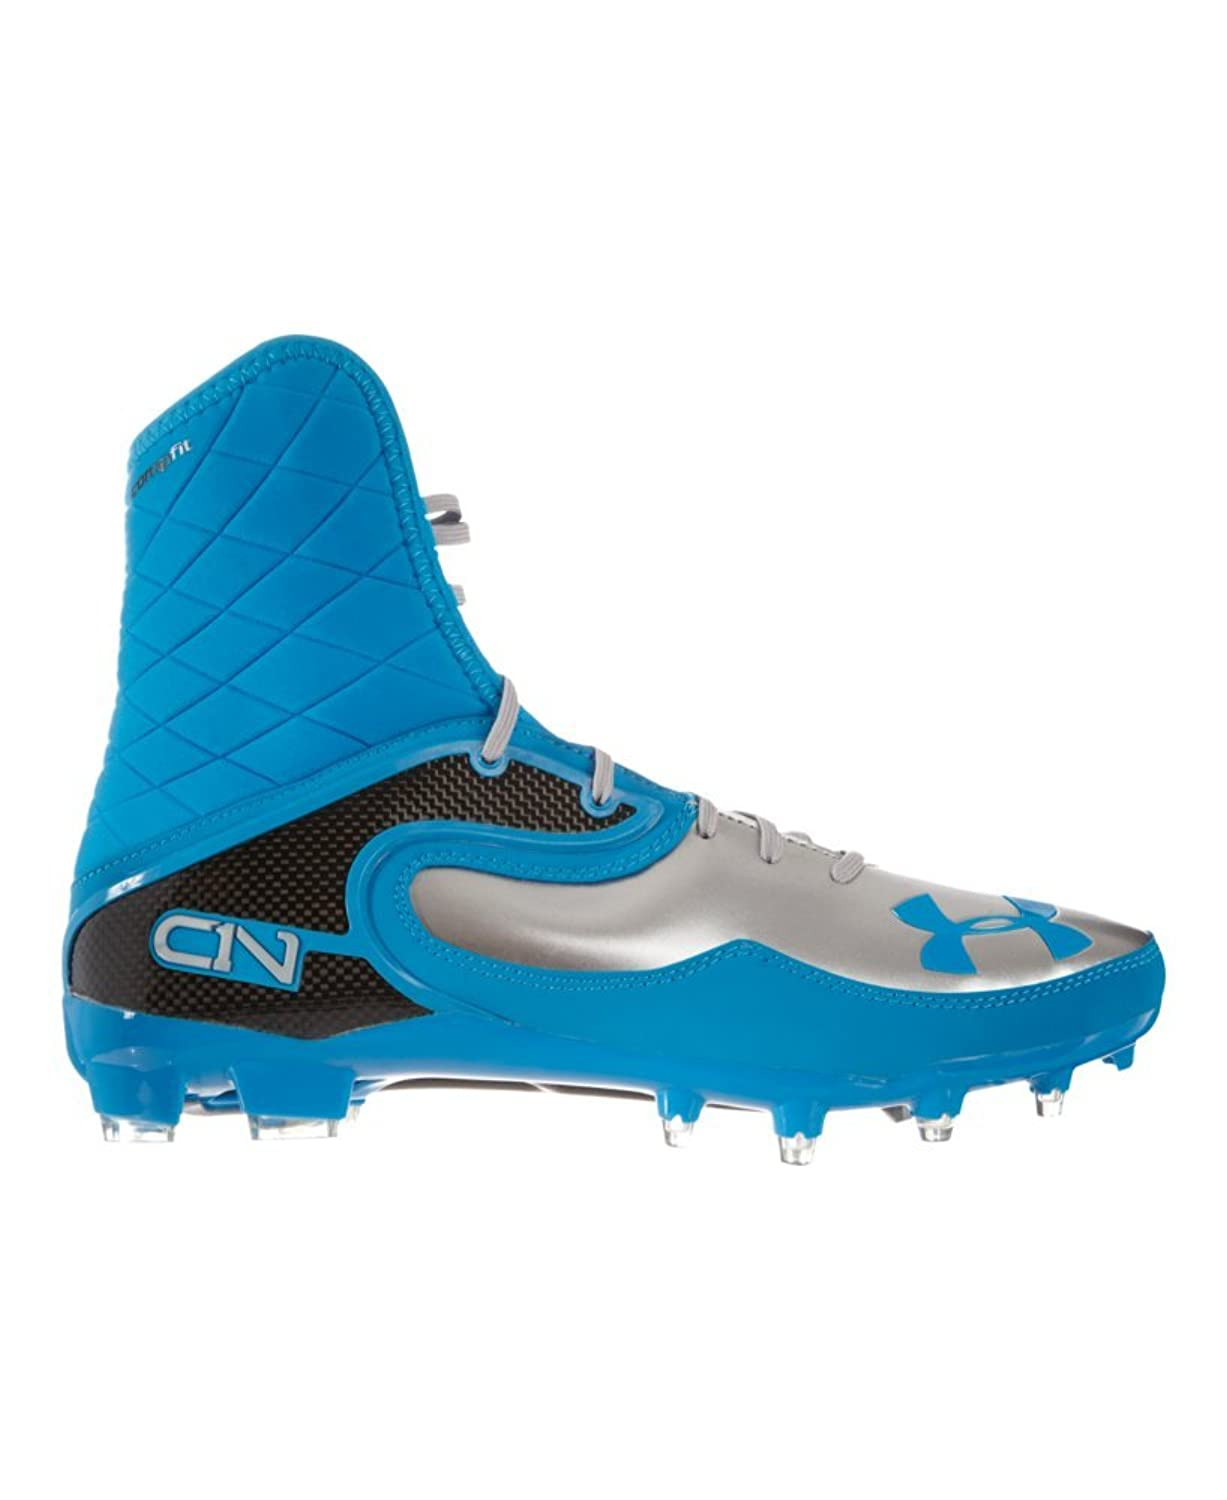 under armour flash football cleats